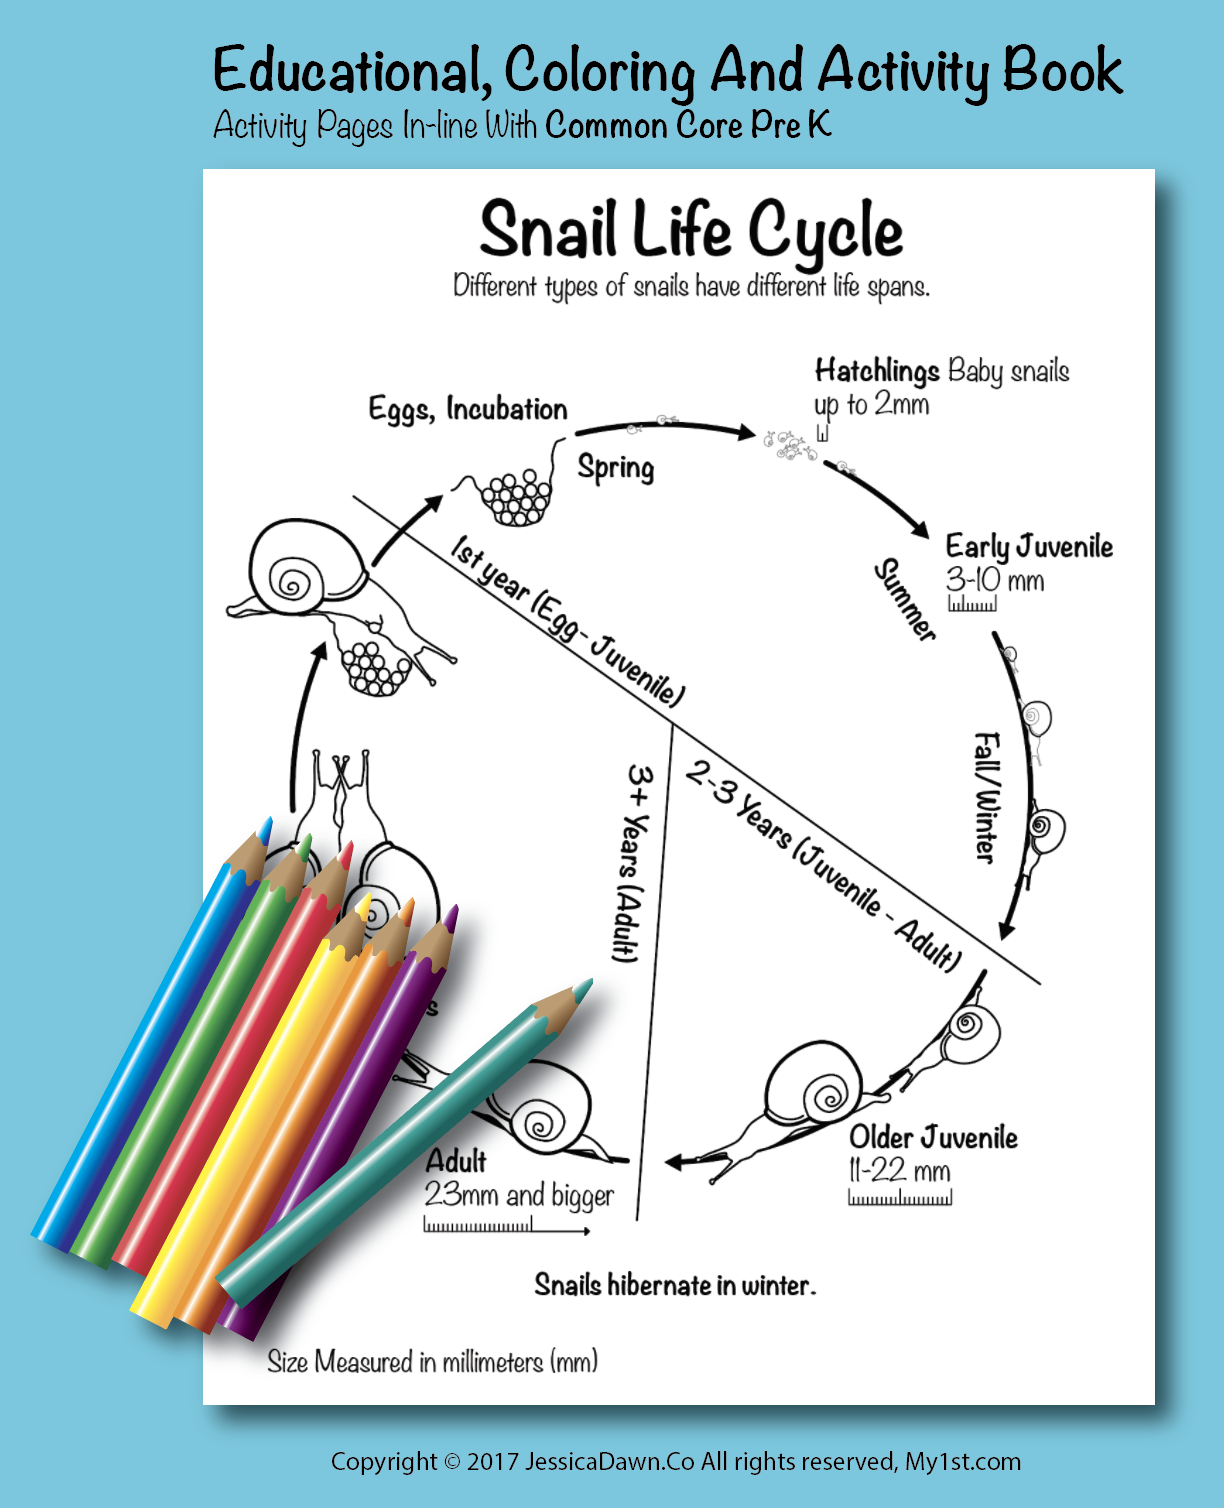 snail life cycle my1st com coloring page fun and educational  [ 1224 x 1508 Pixel ]